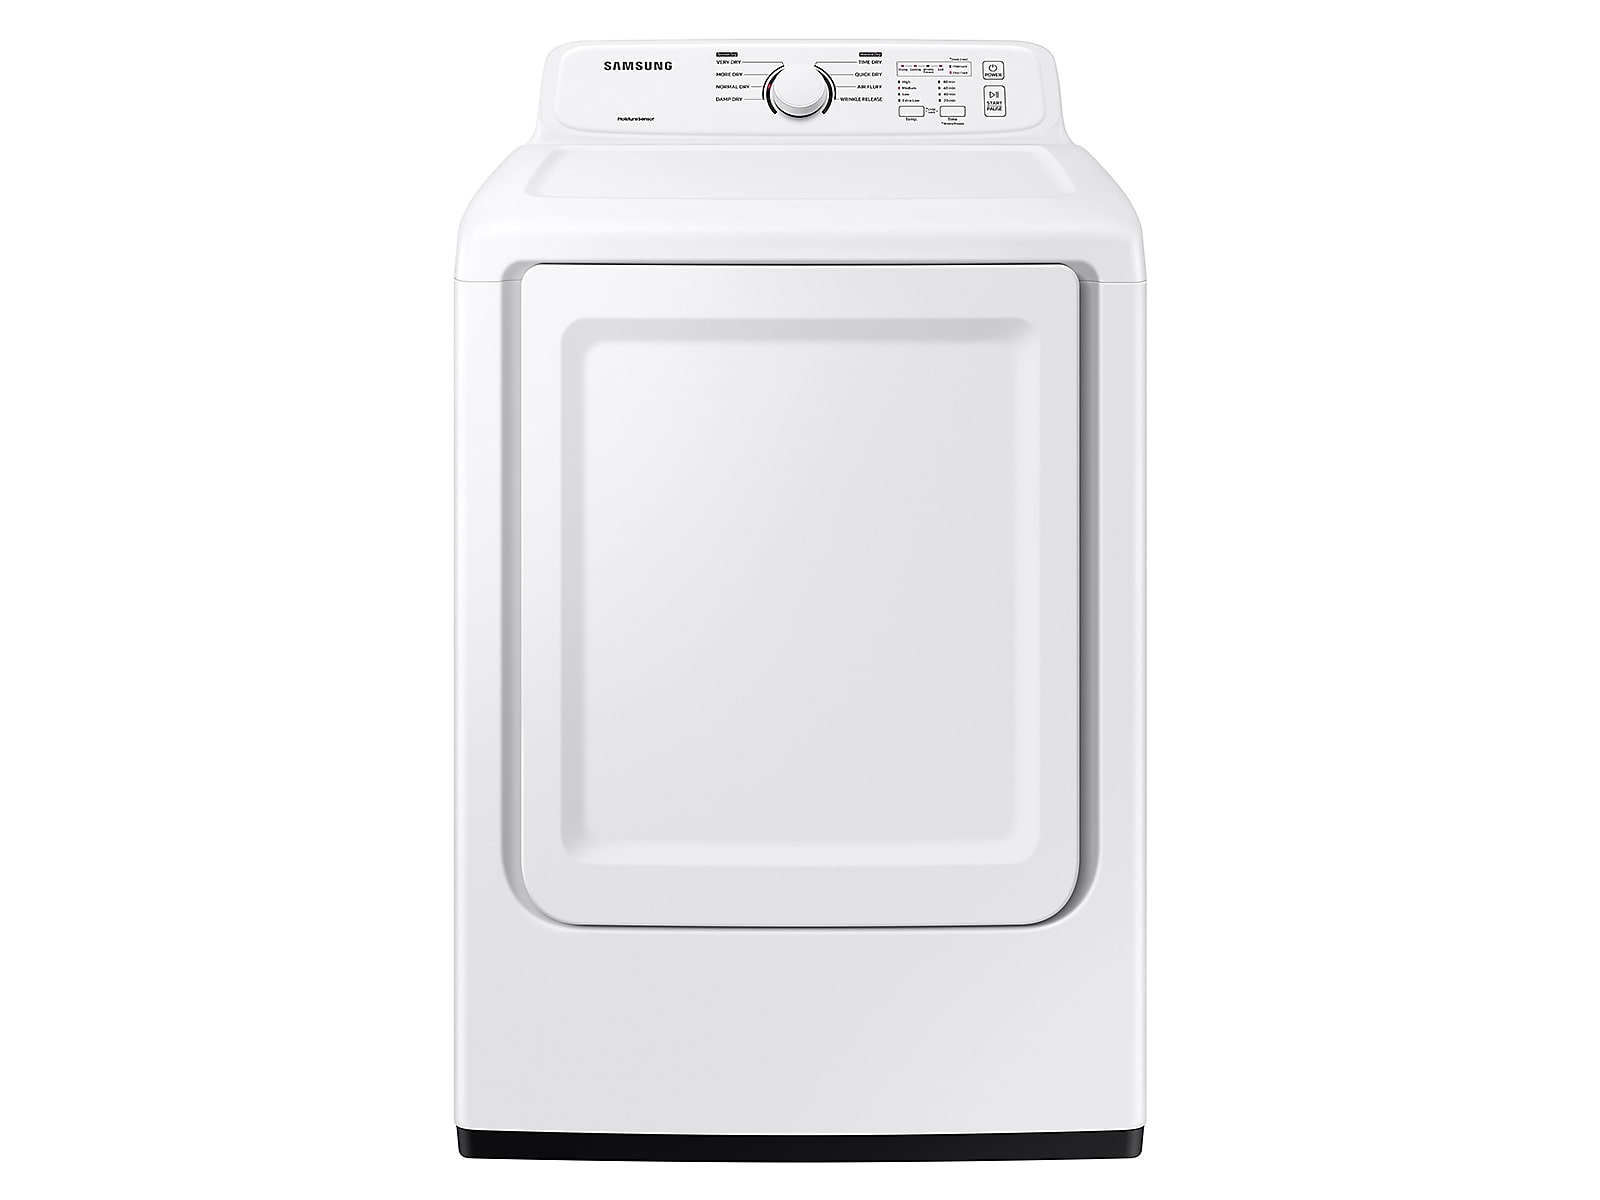 Samsung coupon: Samsung 7.2 cu. ft. Electric Dryer with Sensor Dry and 8 Drying Cycles in White(DVE41A3000W/A3)